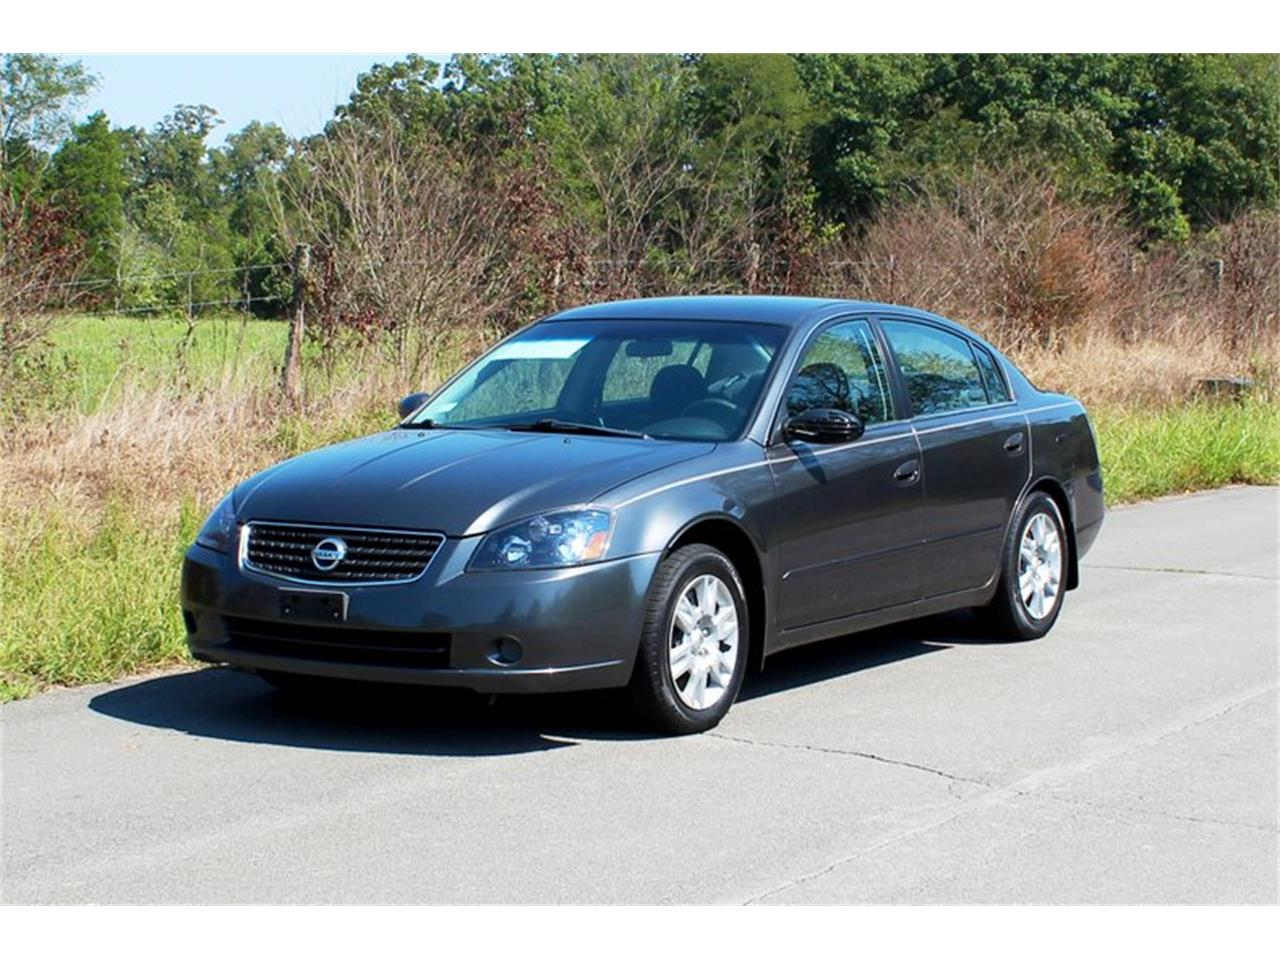 altima nissan 2006 lenoir tennessee classic cc classiccars financing inspection insurance transport